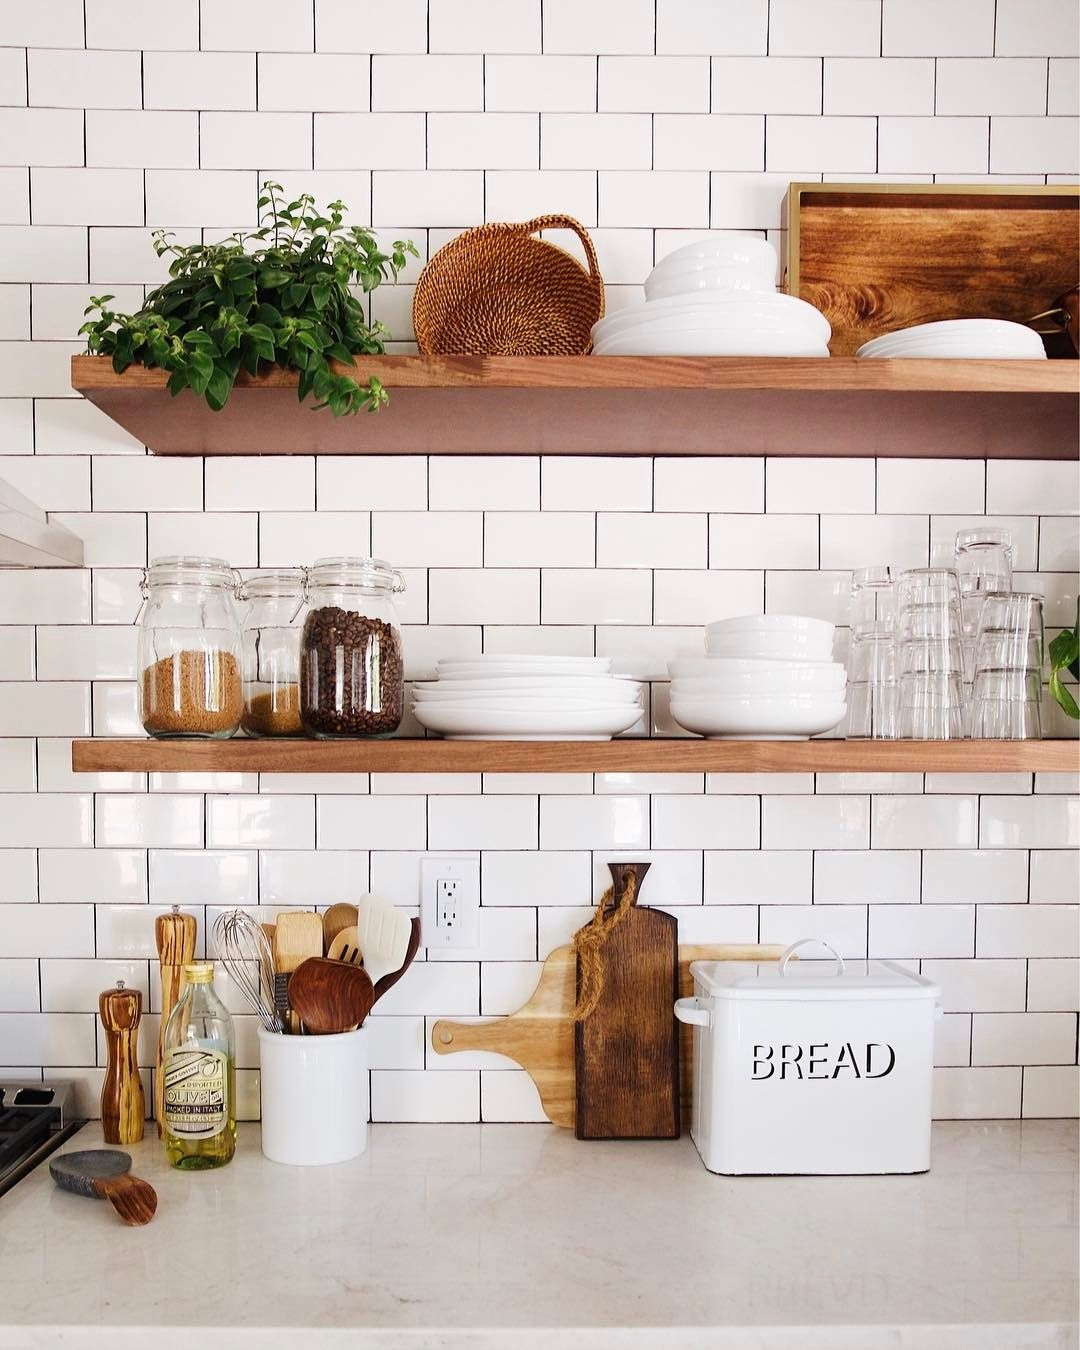 Open Shelving Using Ikea Butcher Block Countertops Kitchen Remodel Layout Kitchen Remodeling Projects Kitchen Remodel Small